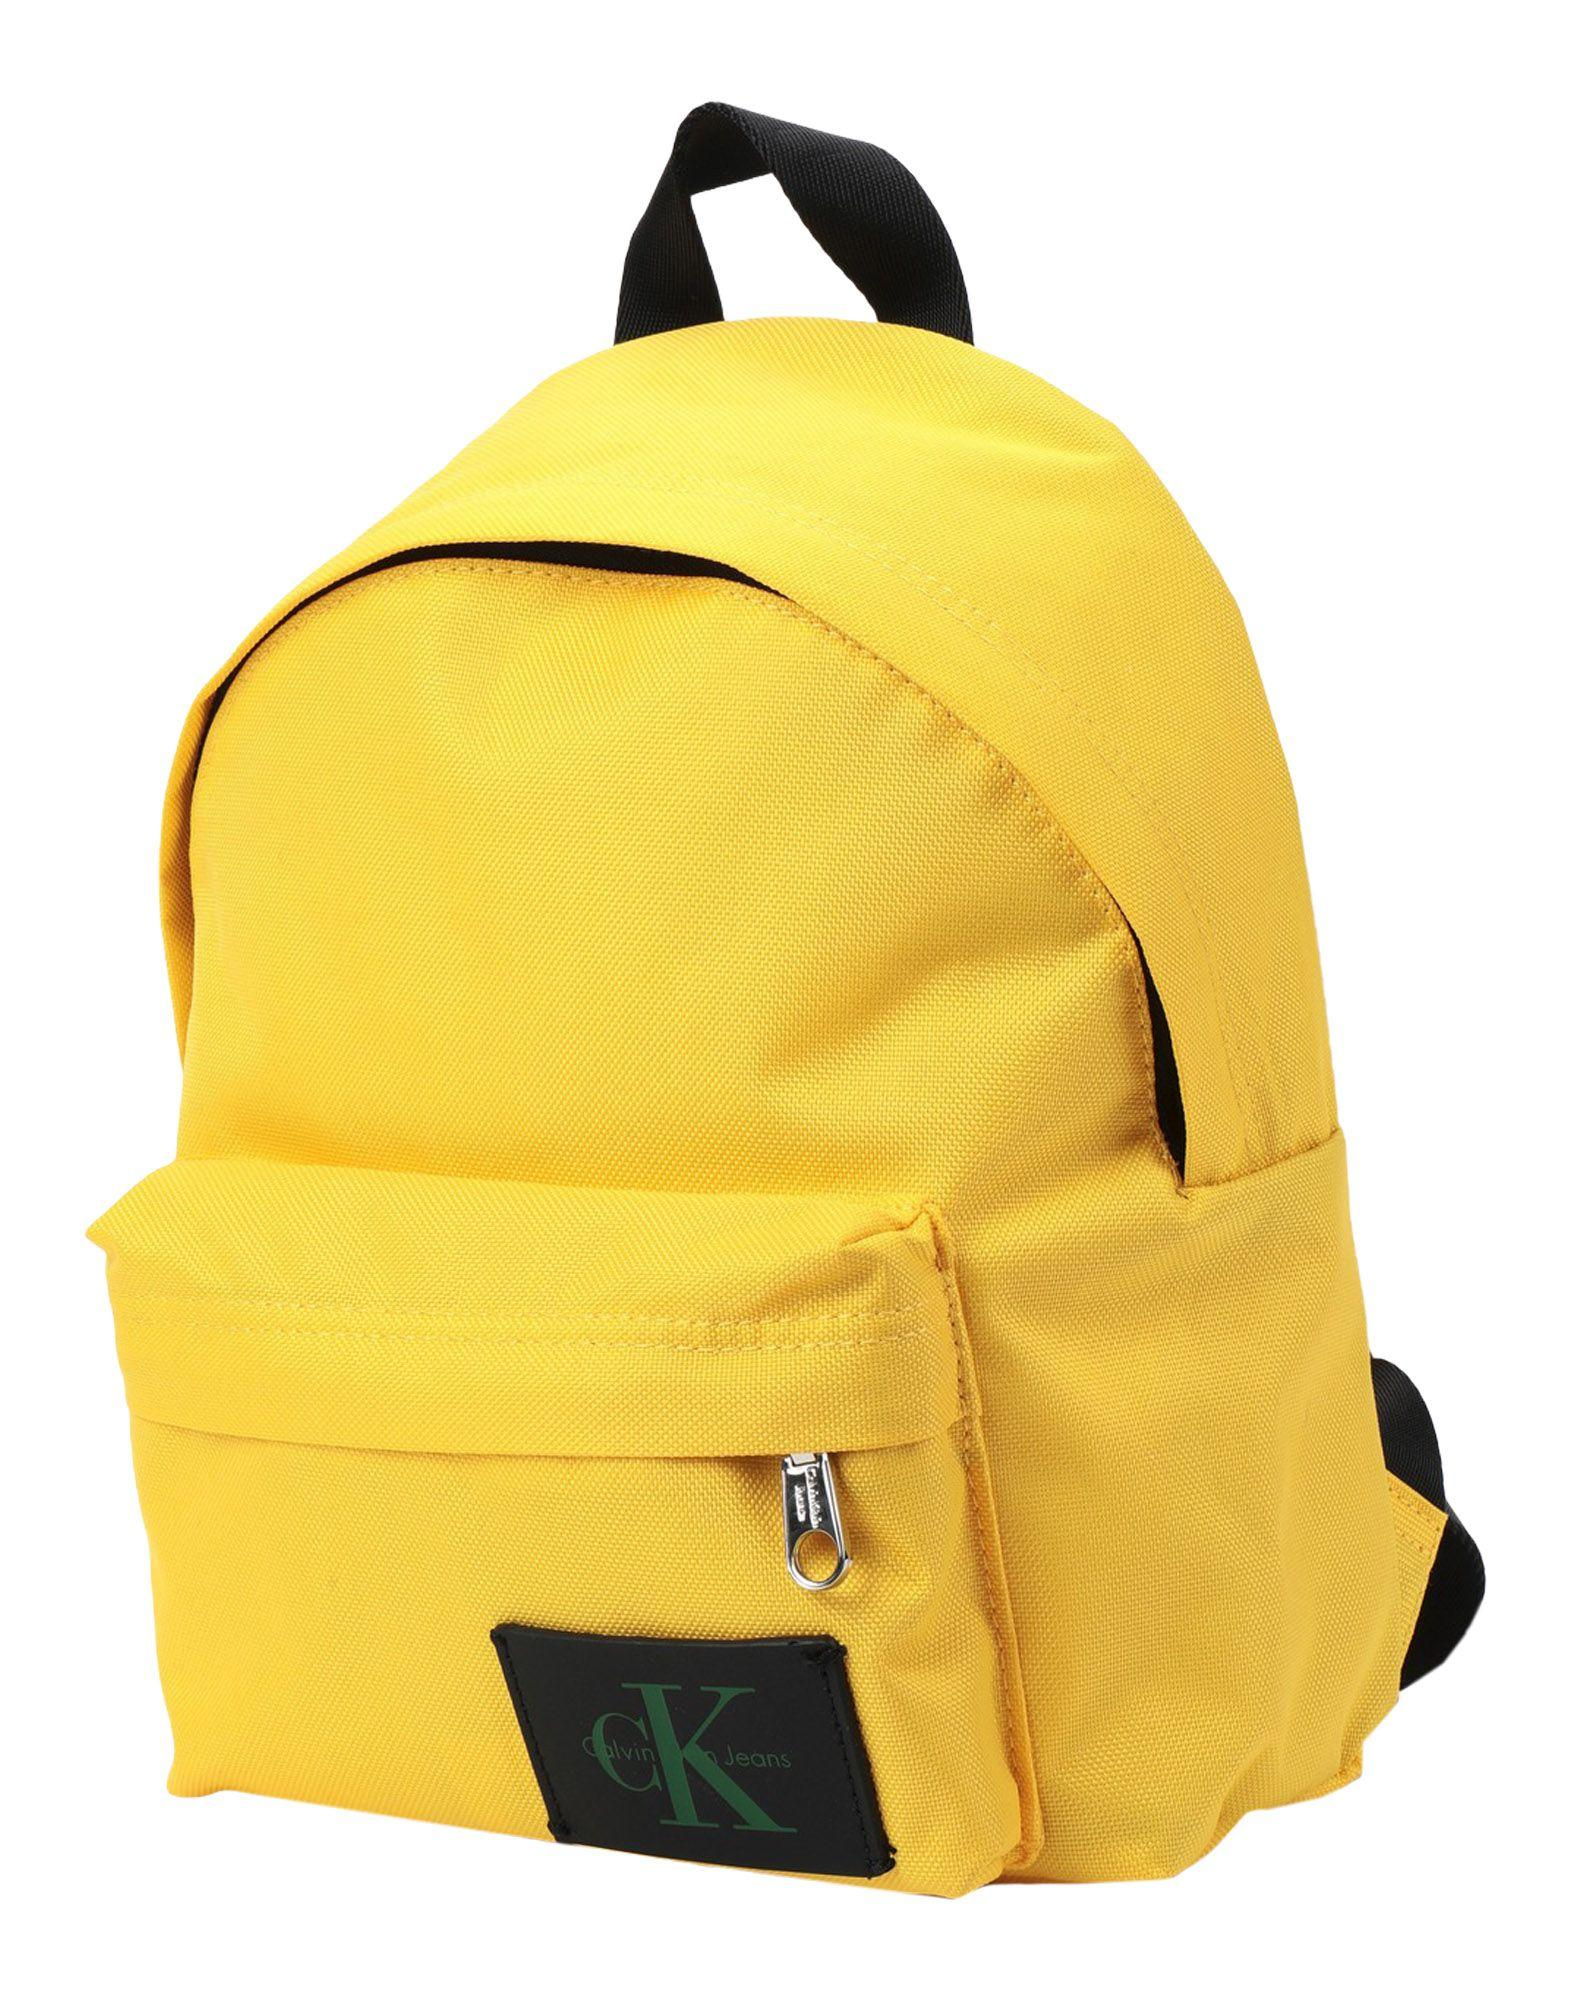 6366b6a4cb16a Calvin Klein Backpacks   Bum Bags in Yellow for Men - Lyst